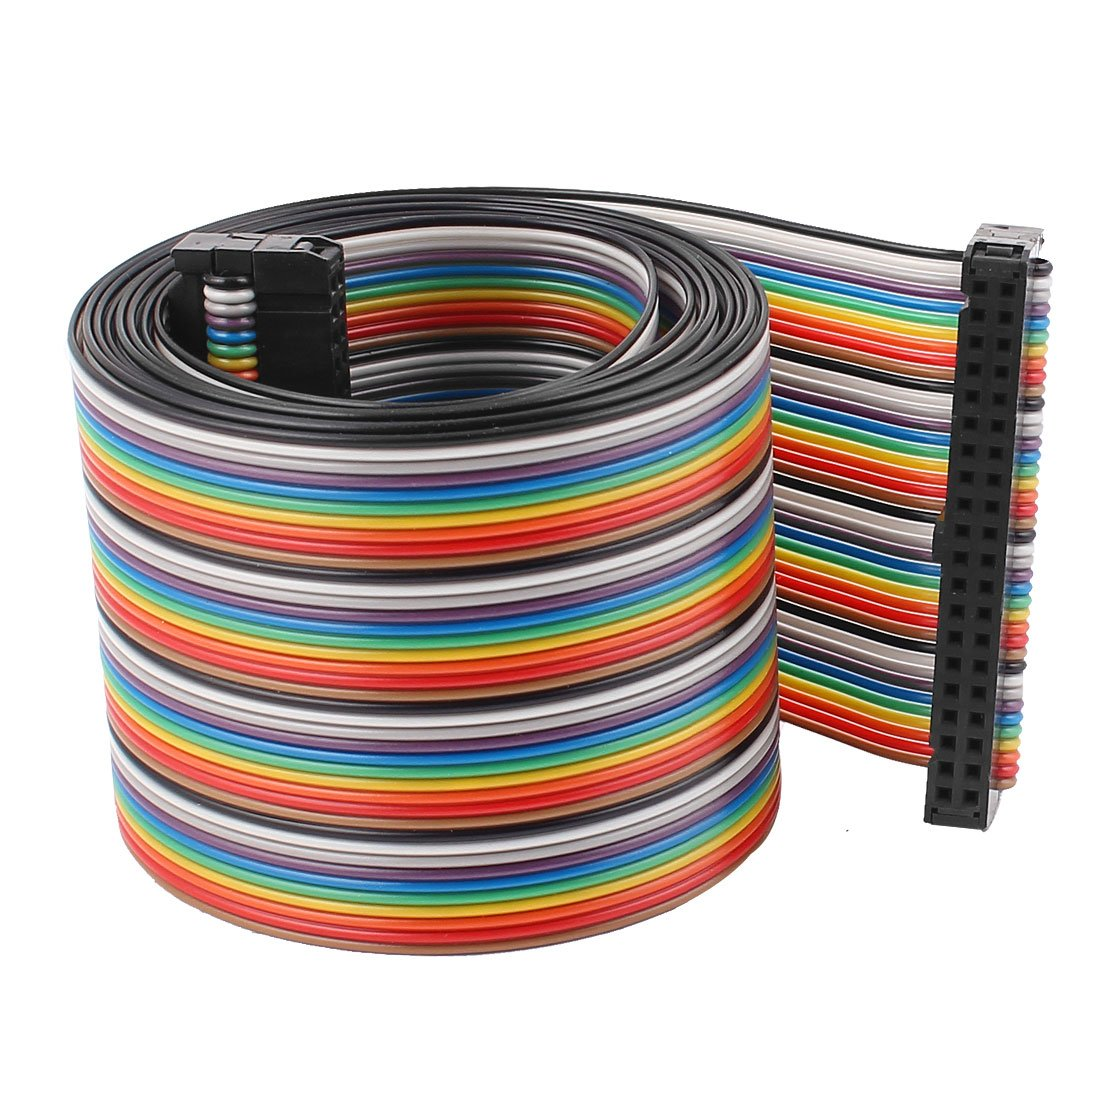 Uxcell a15040700ux0316 4.8ft 40 Pin 40 Way F/F Connector IDC Flat Rainbow